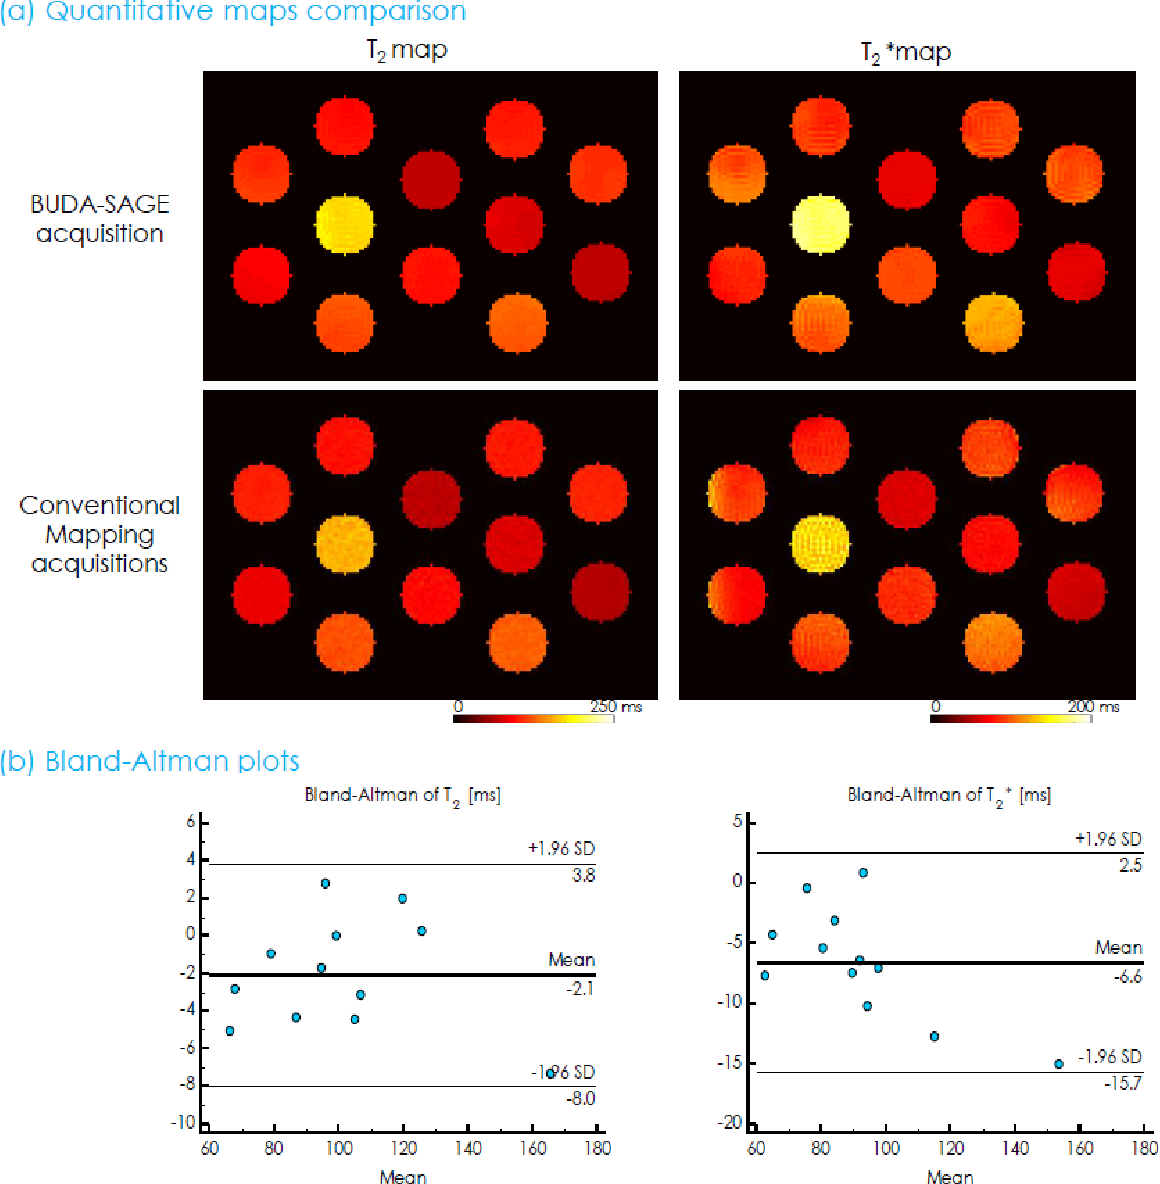 Figure 4 for BUDA-SAGE with self-supervised denoising enables fast, distortion-free, high-resolution T2, T2*, para- and dia-magnetic susceptibility mapping